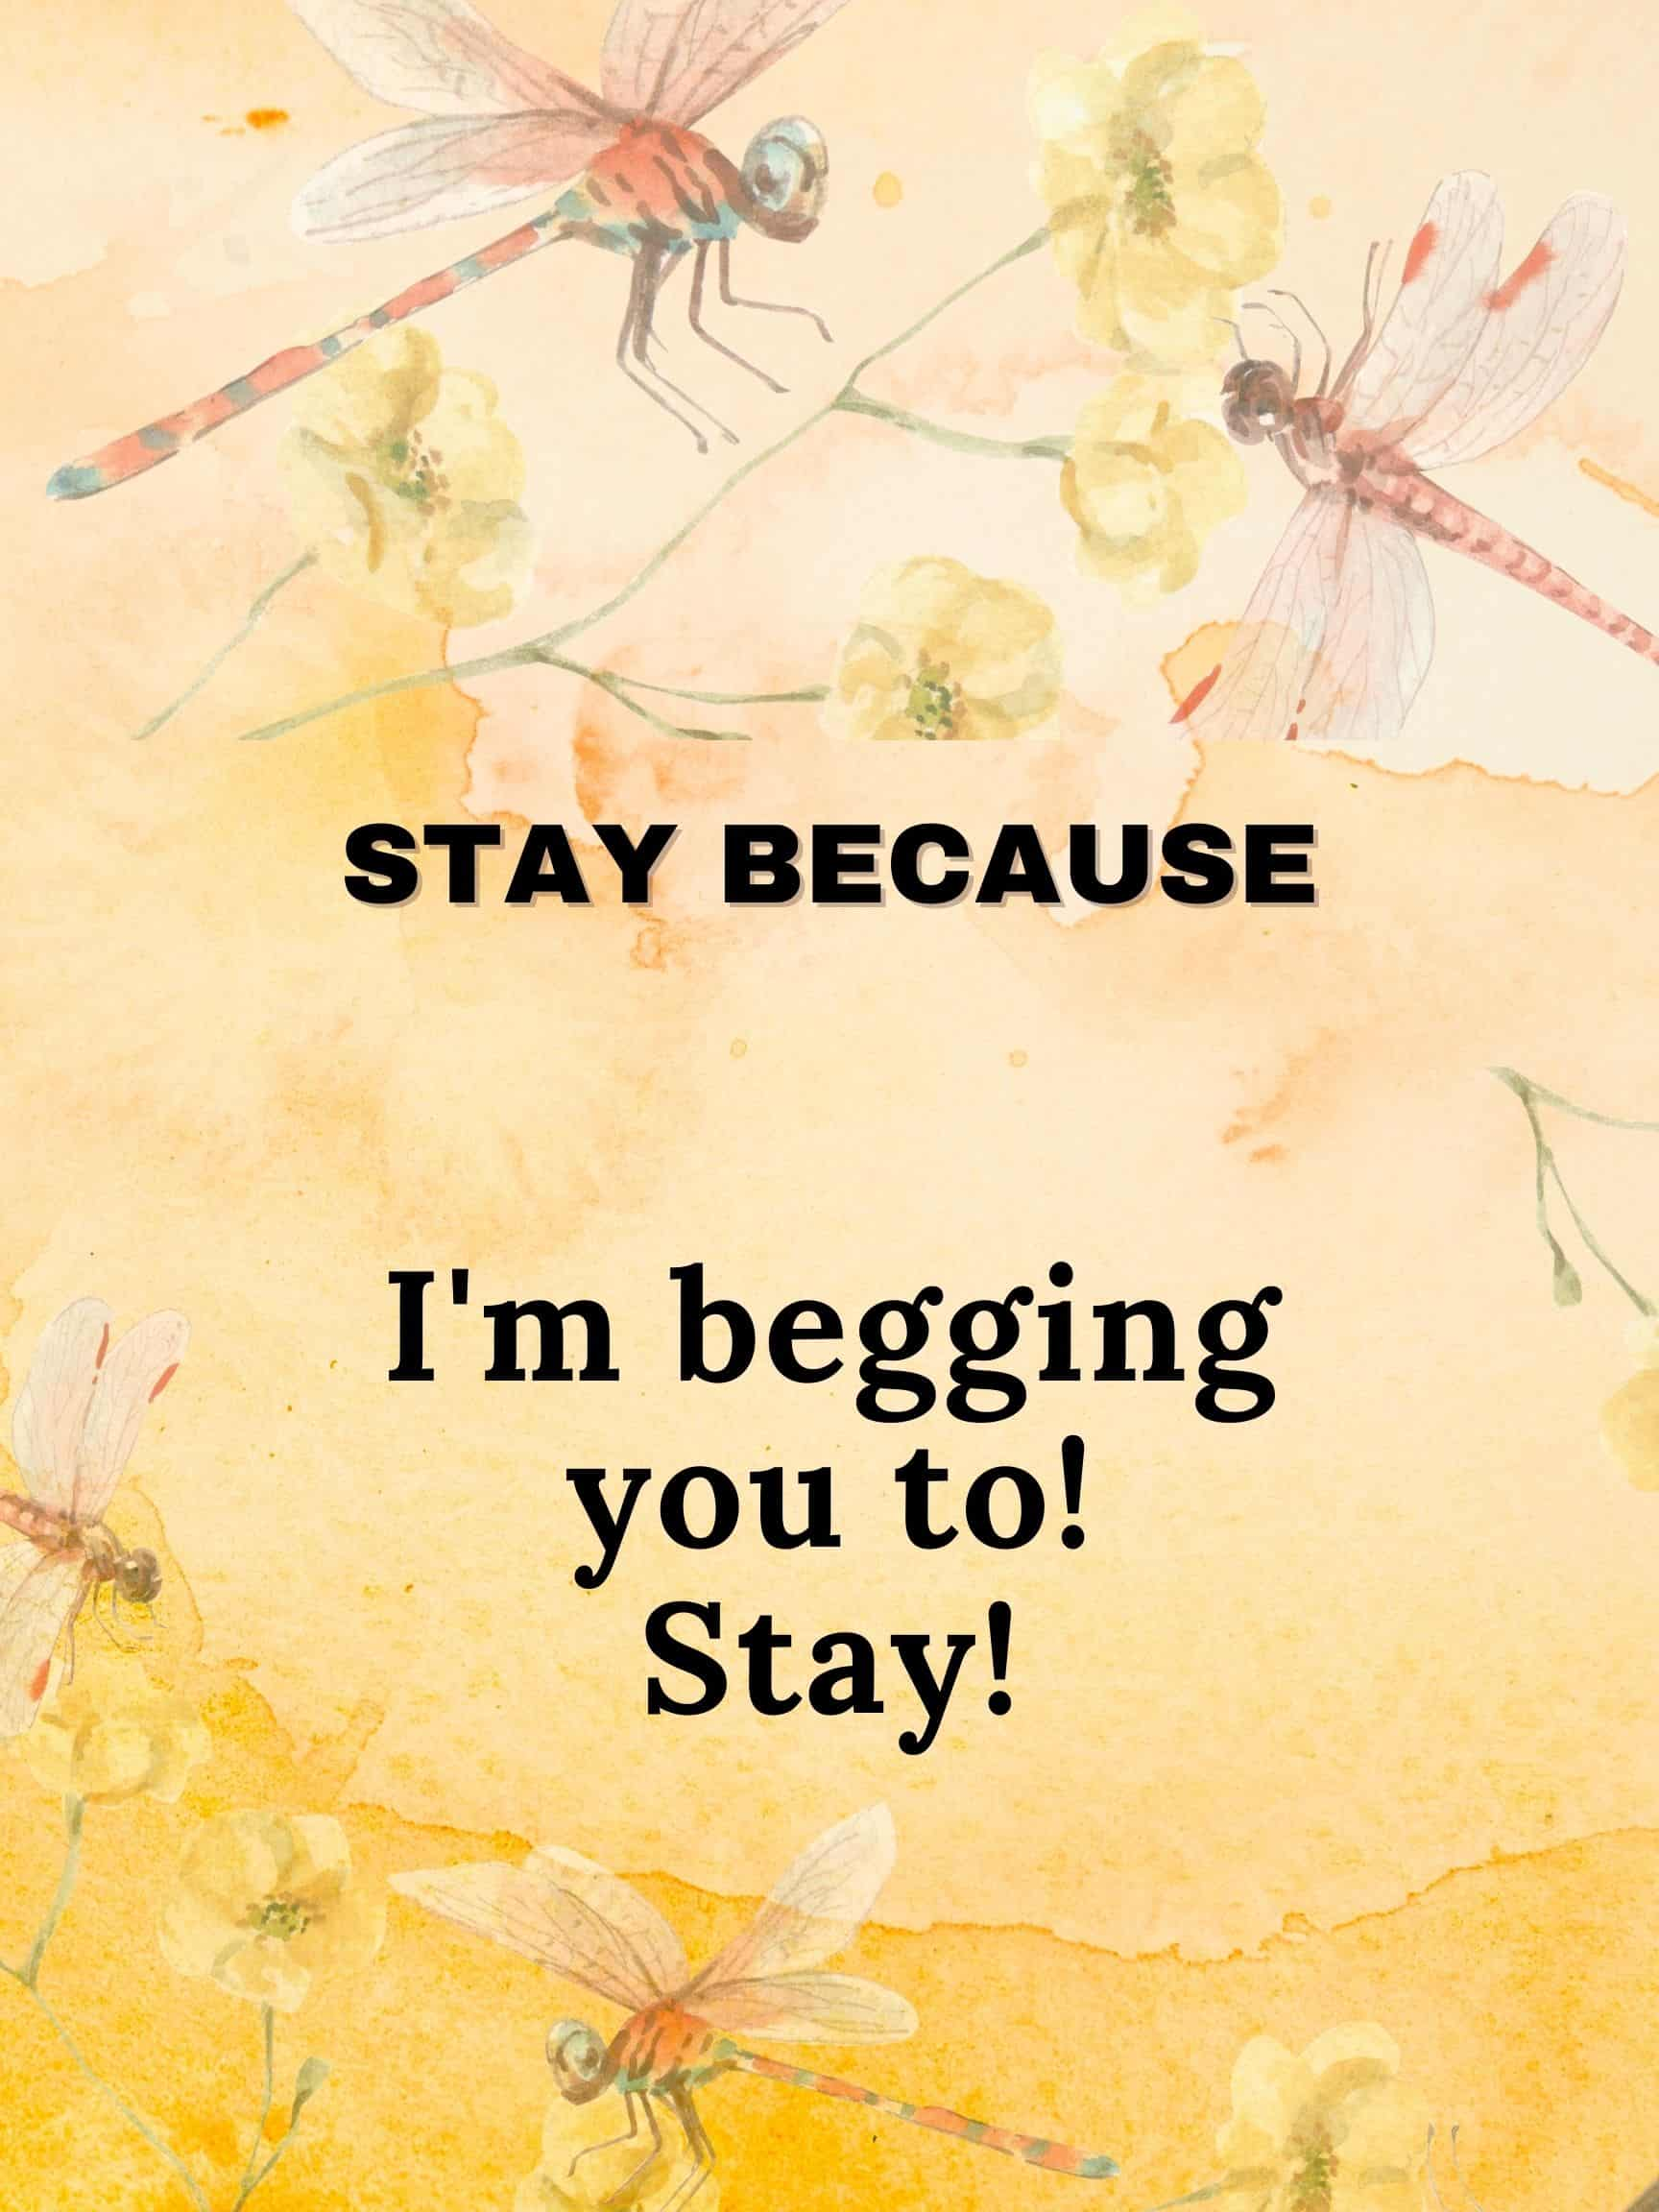 Stay because I'm begging you to stay. #StayBecause